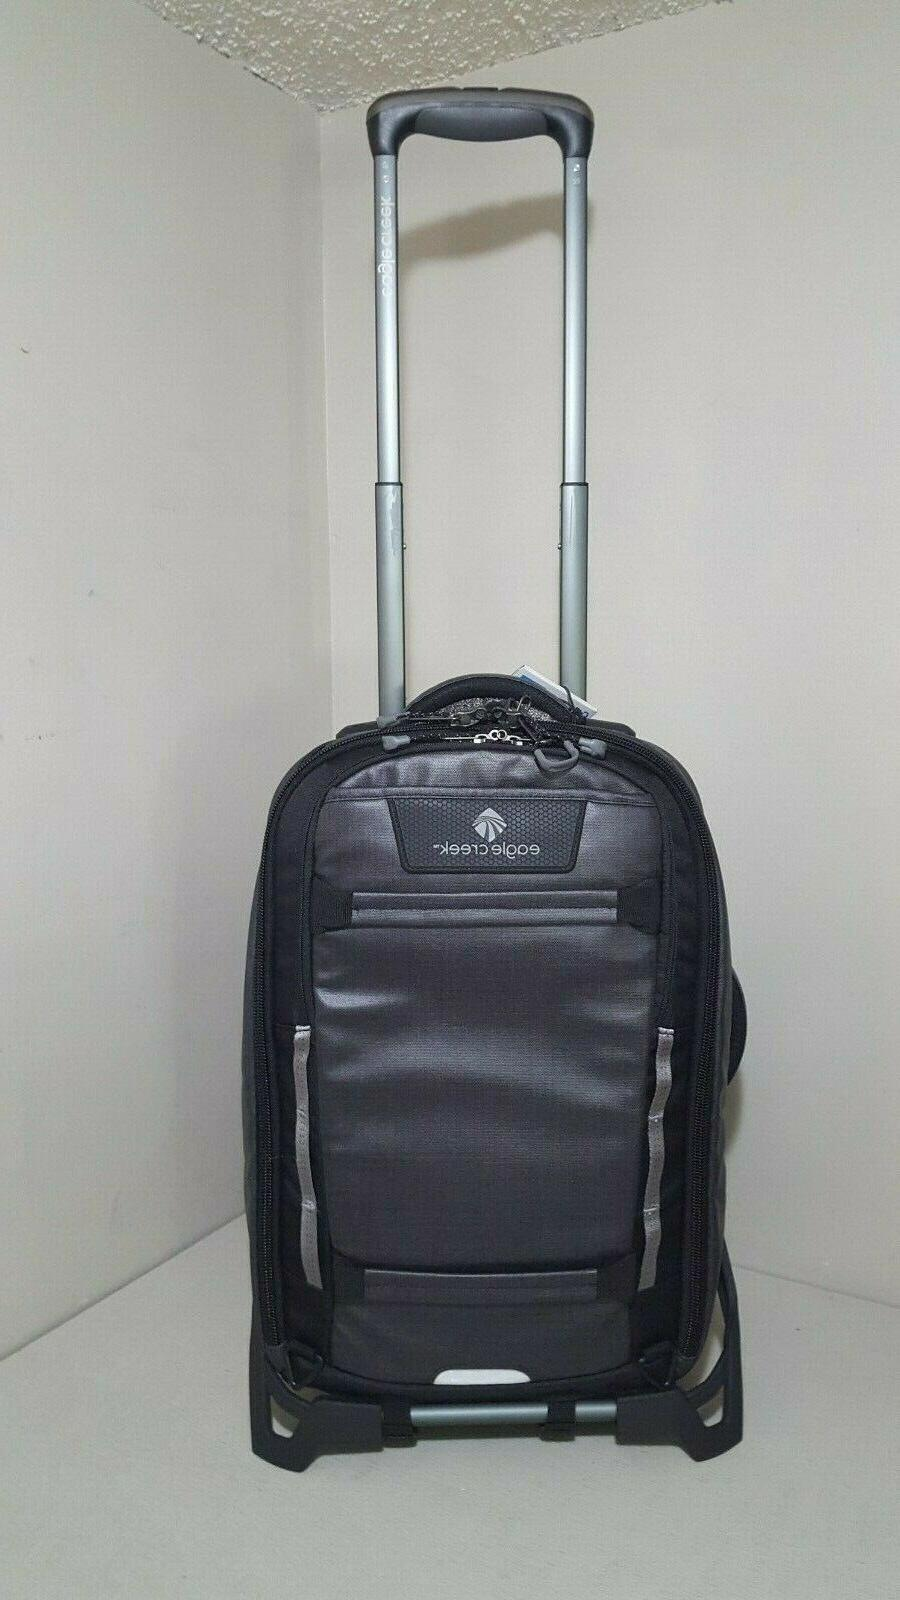 "NEW EAGLE 21"" INTERNATIONAL LUGGAGE WITH BACKPACK"